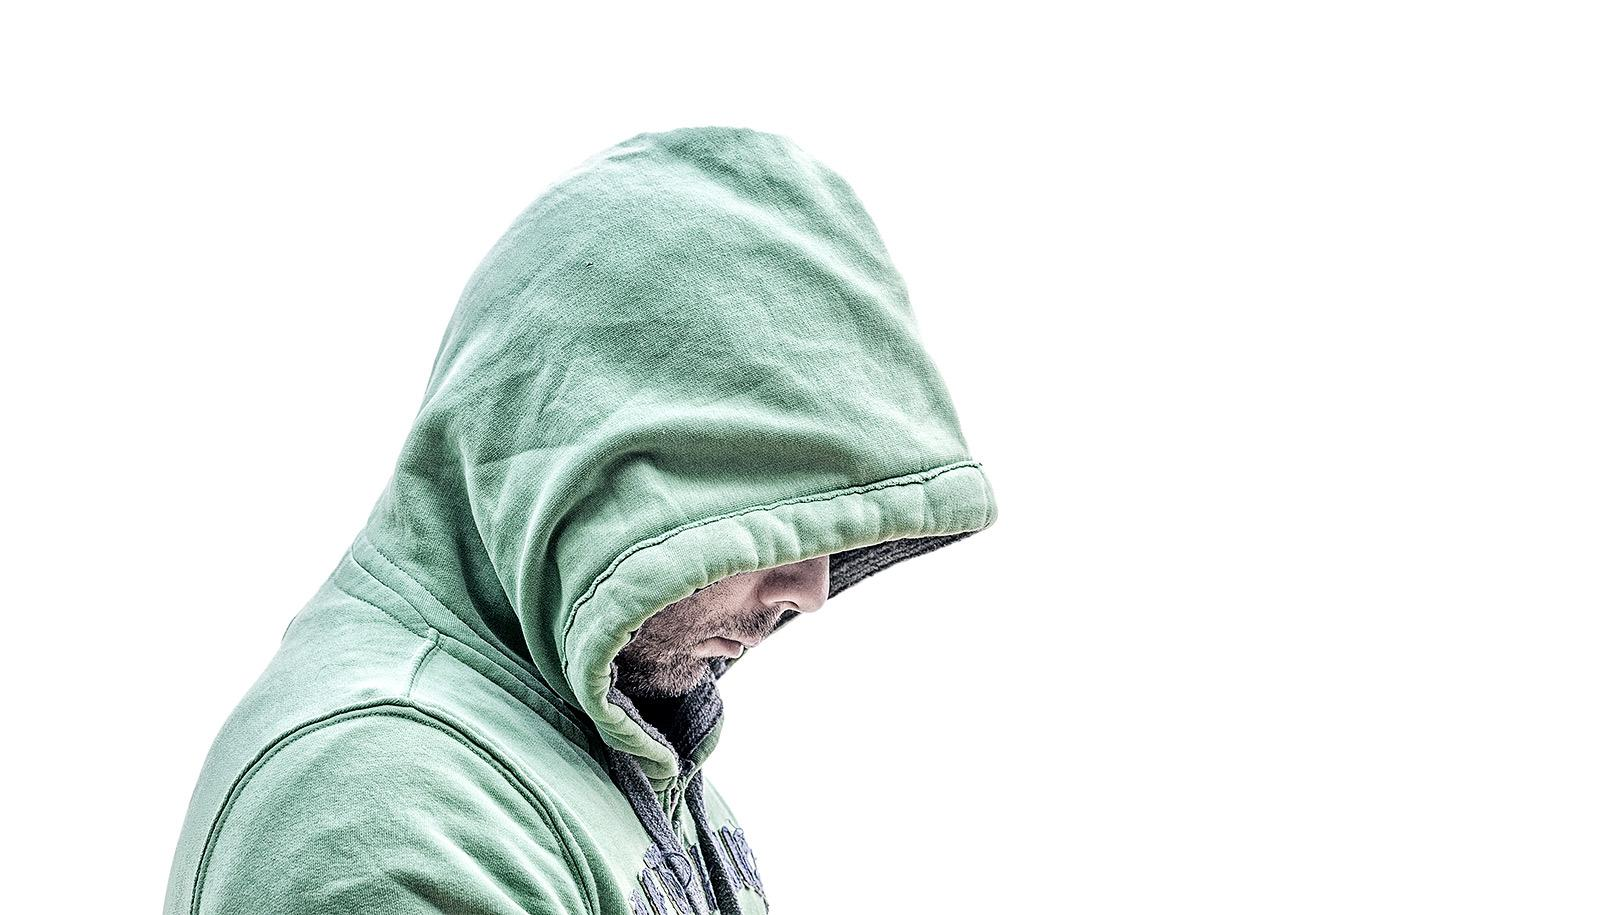 hooded man looking down